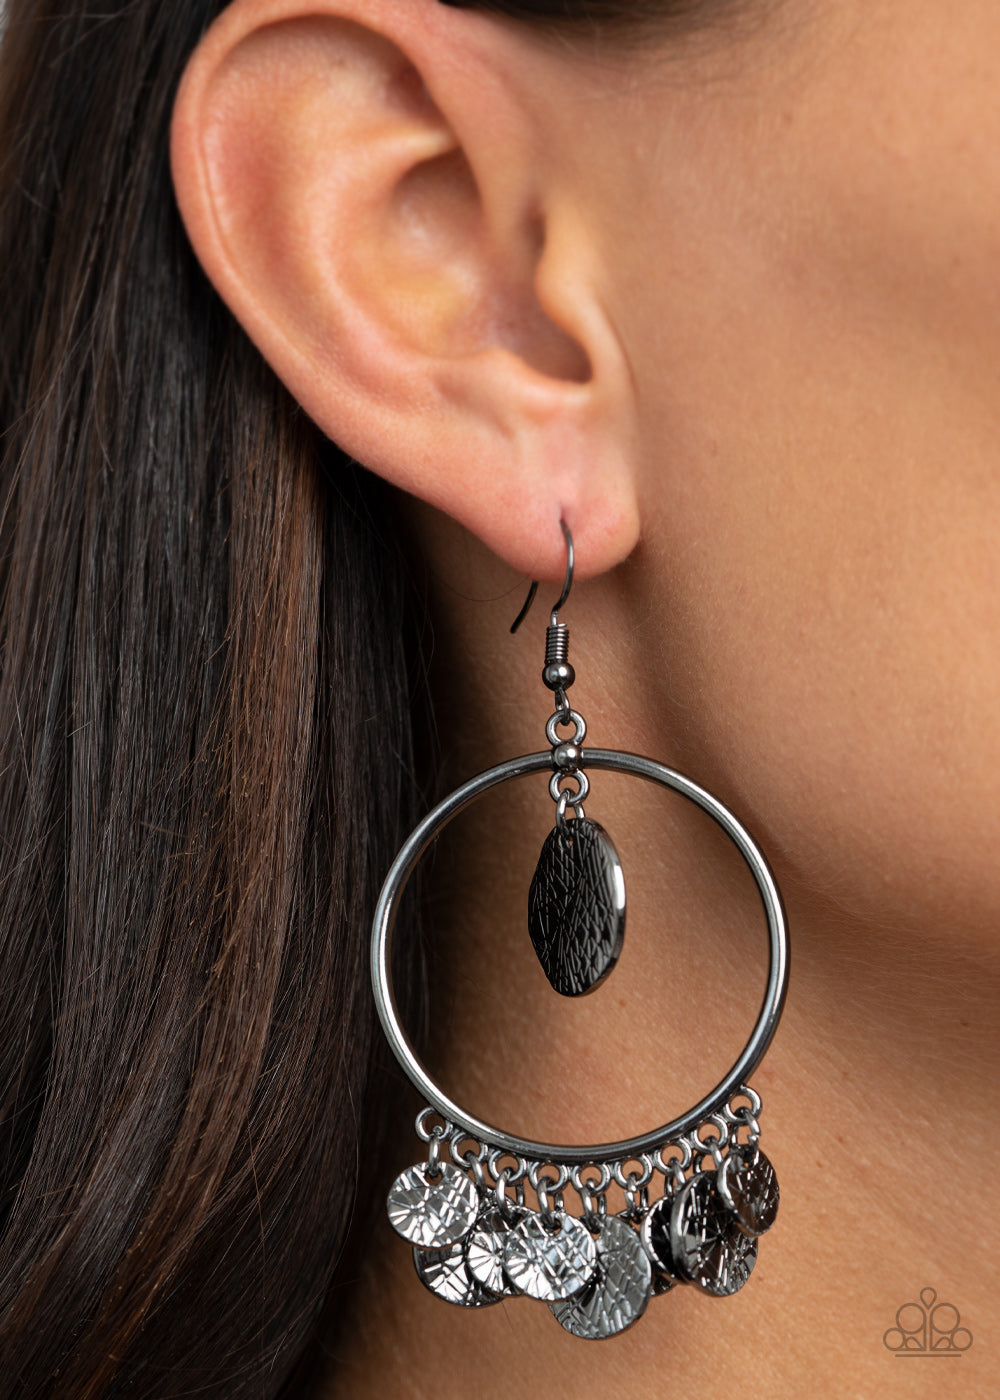 Start From Scratch - Black Earrings - Paparazzi Accessories